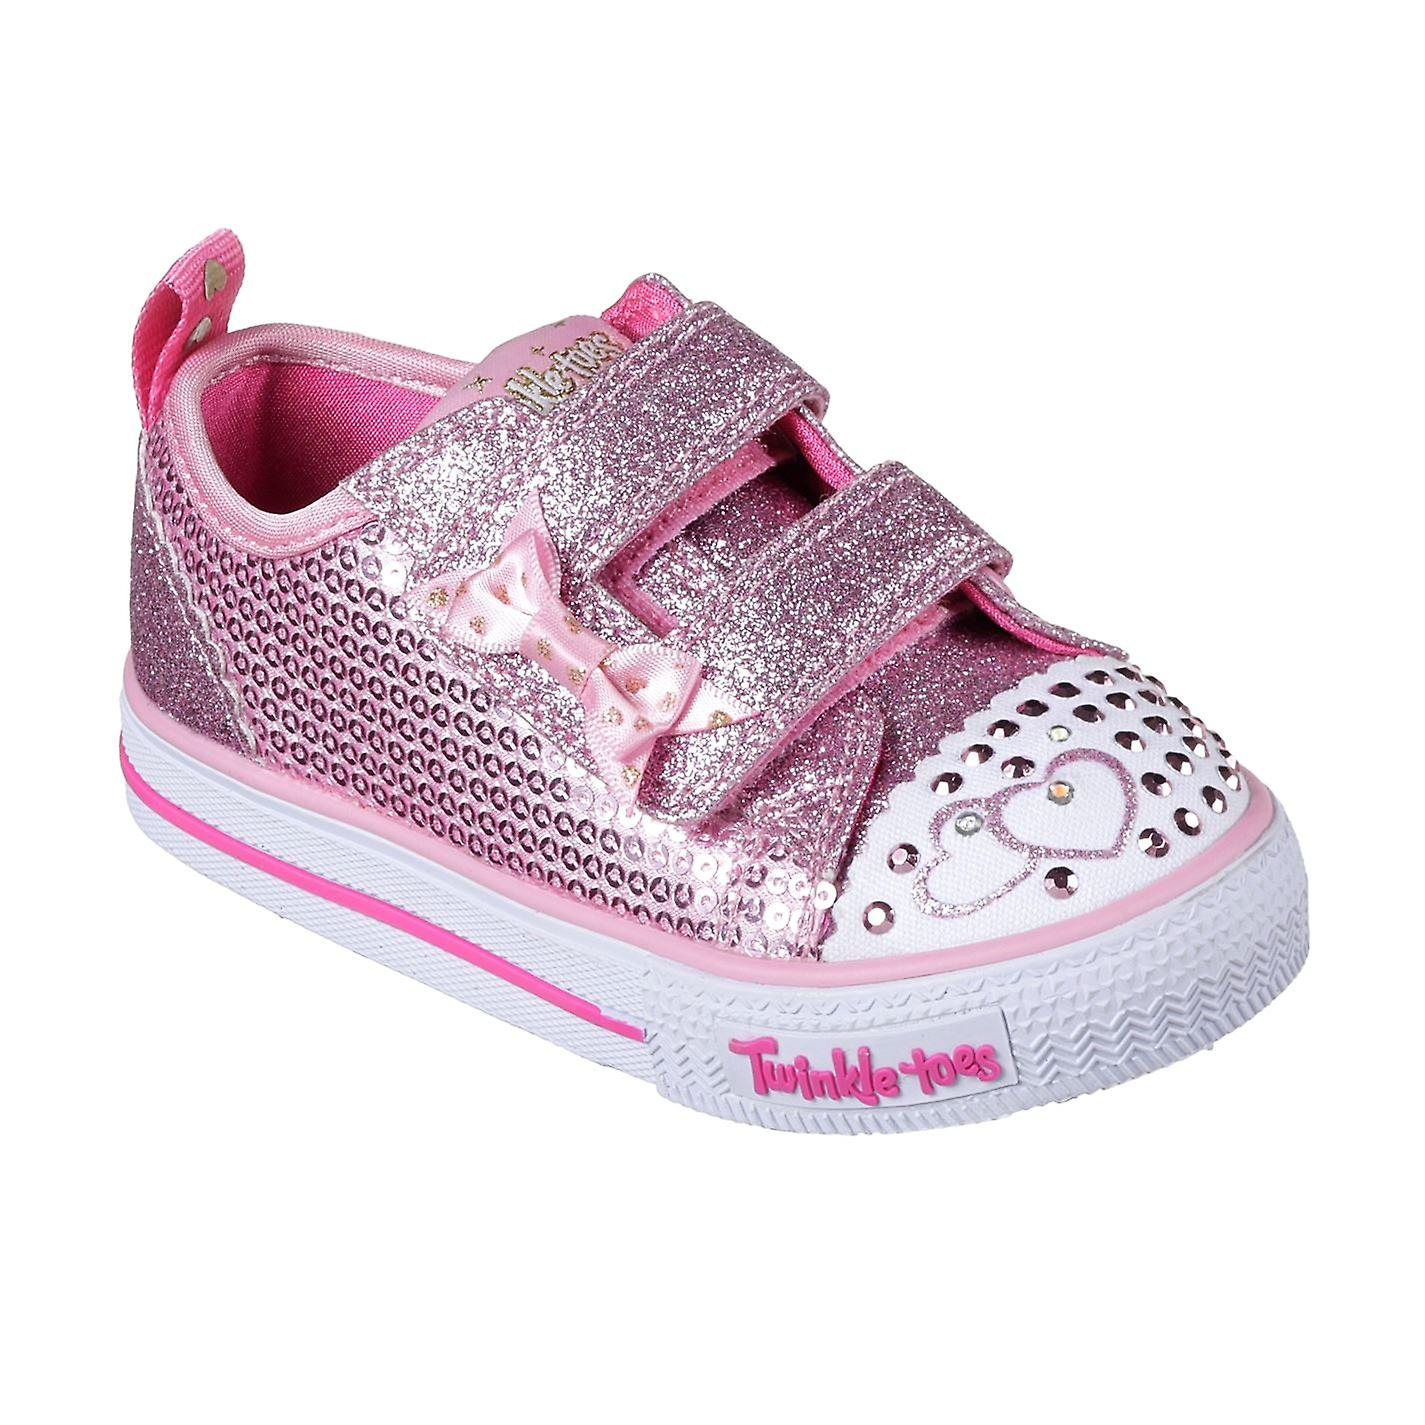 Skechers Enfants Twinkle Toes Itsy Bitsy chaussures Infant Girls